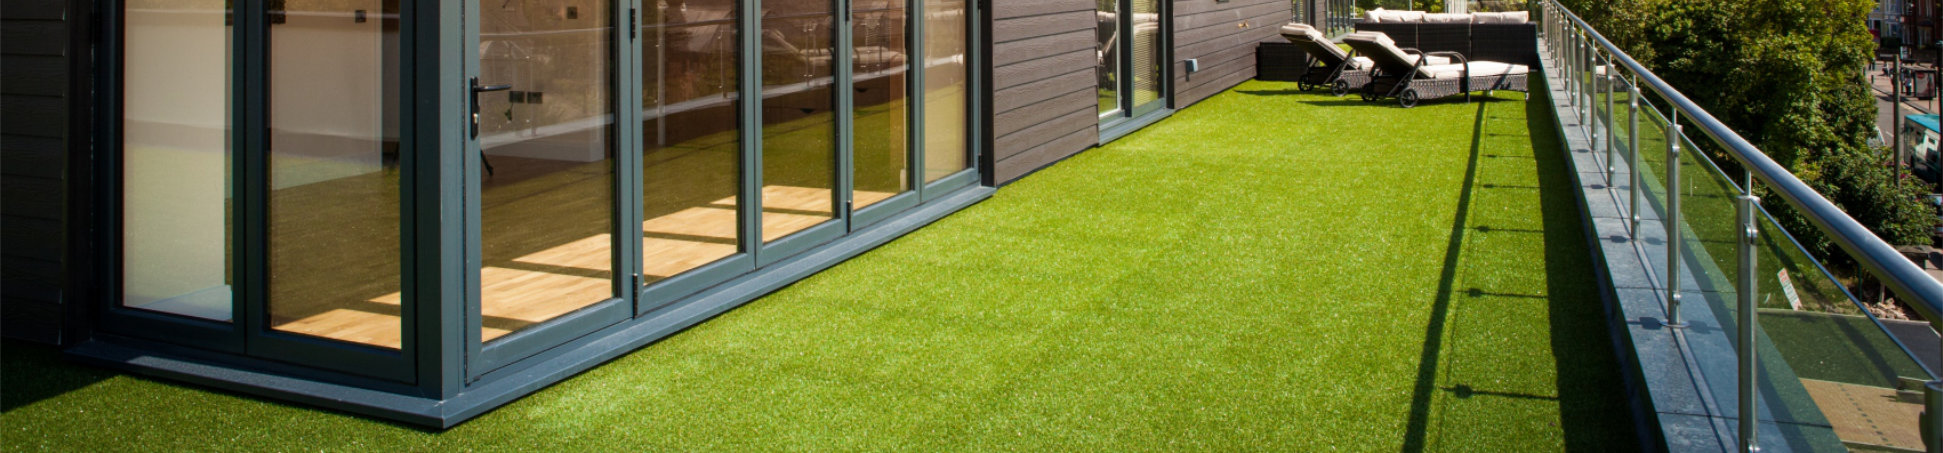 Refunds Policy | Quality Artificial Grass | Easylawn Artificial Grass